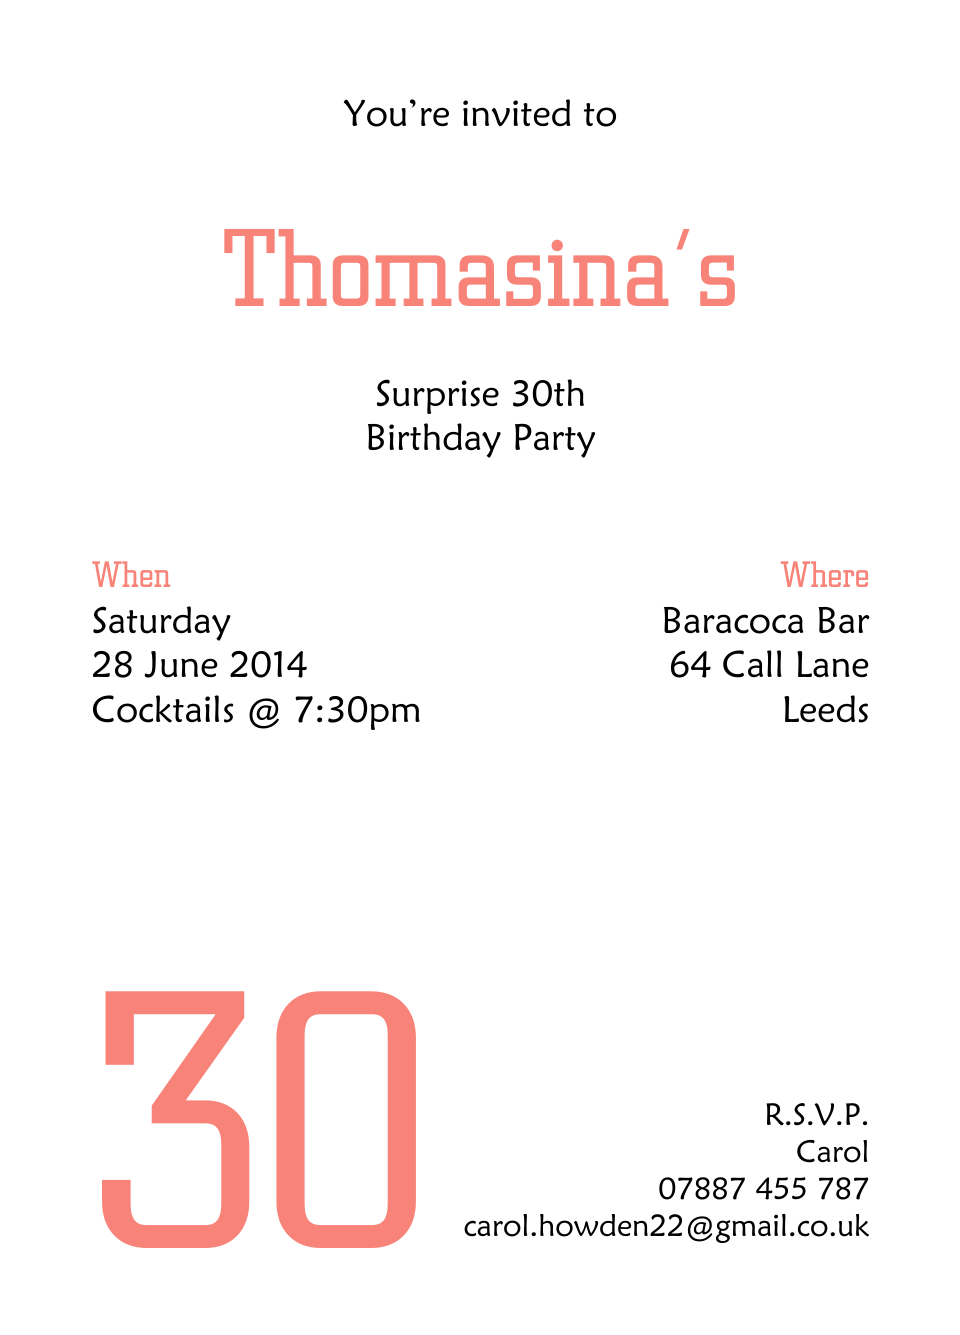 Personalised Stationery : A6 Birthday Party Invites : Thomasina